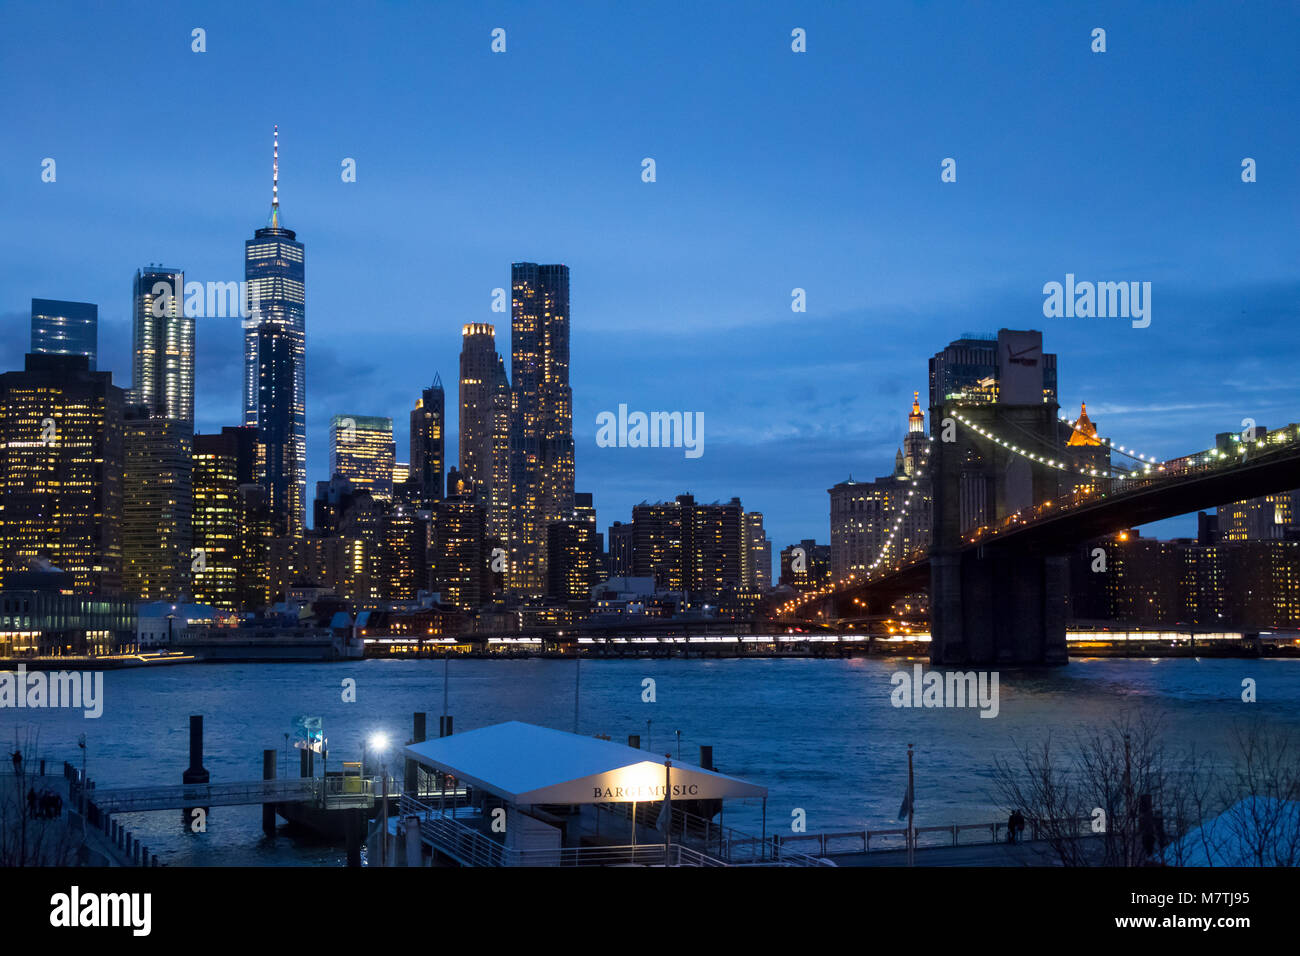 La parte inferiore dello skyline di Manhattan e Brooklyn Bridge come si vede attraverso l'East River da Dumbo Immagini Stock